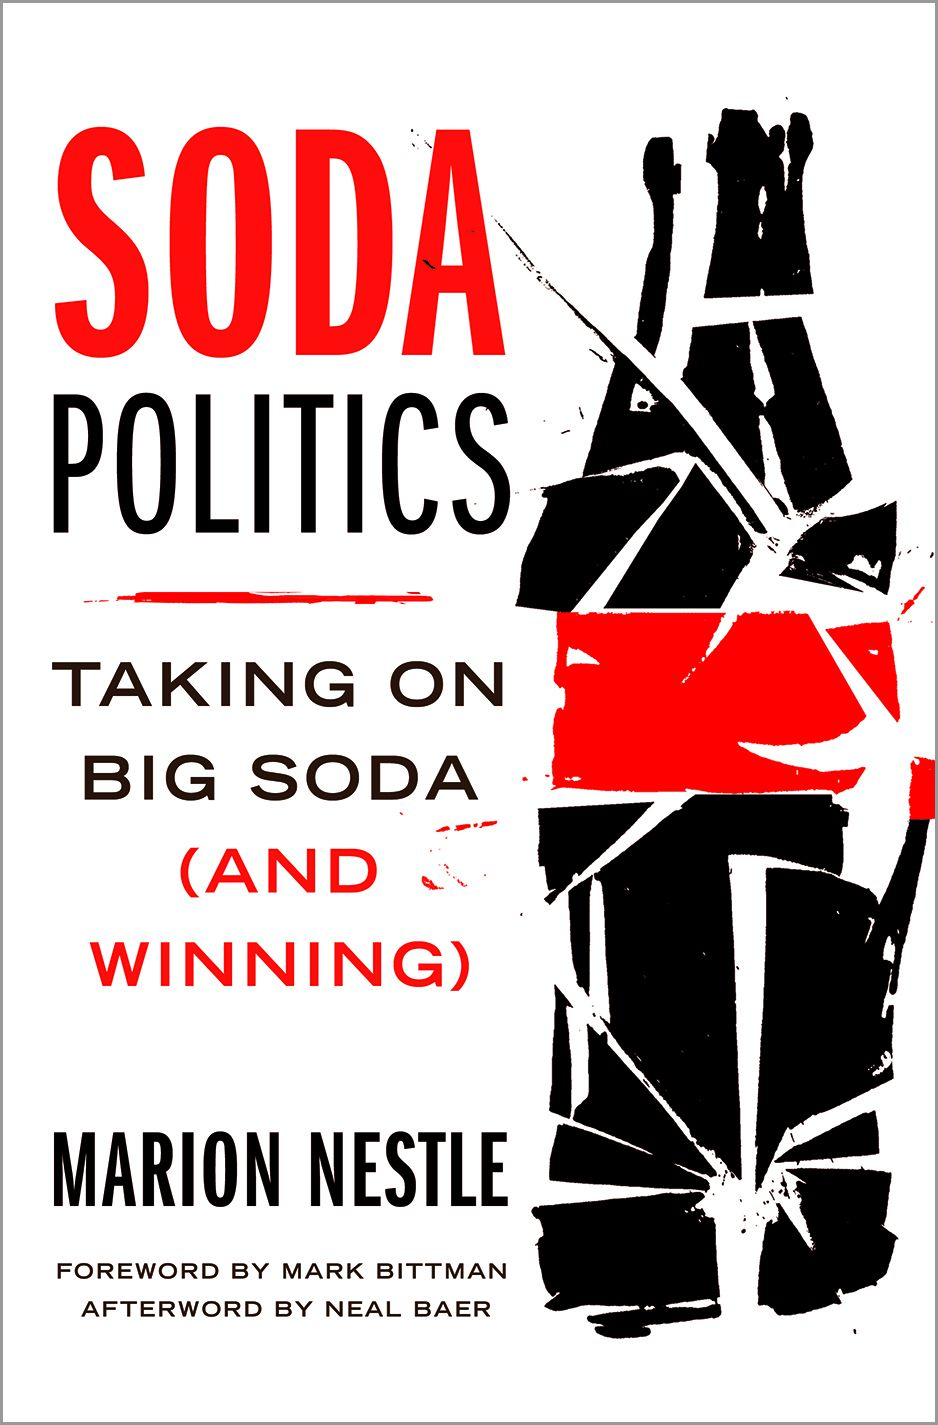 Lobbying practices of the coca cola company